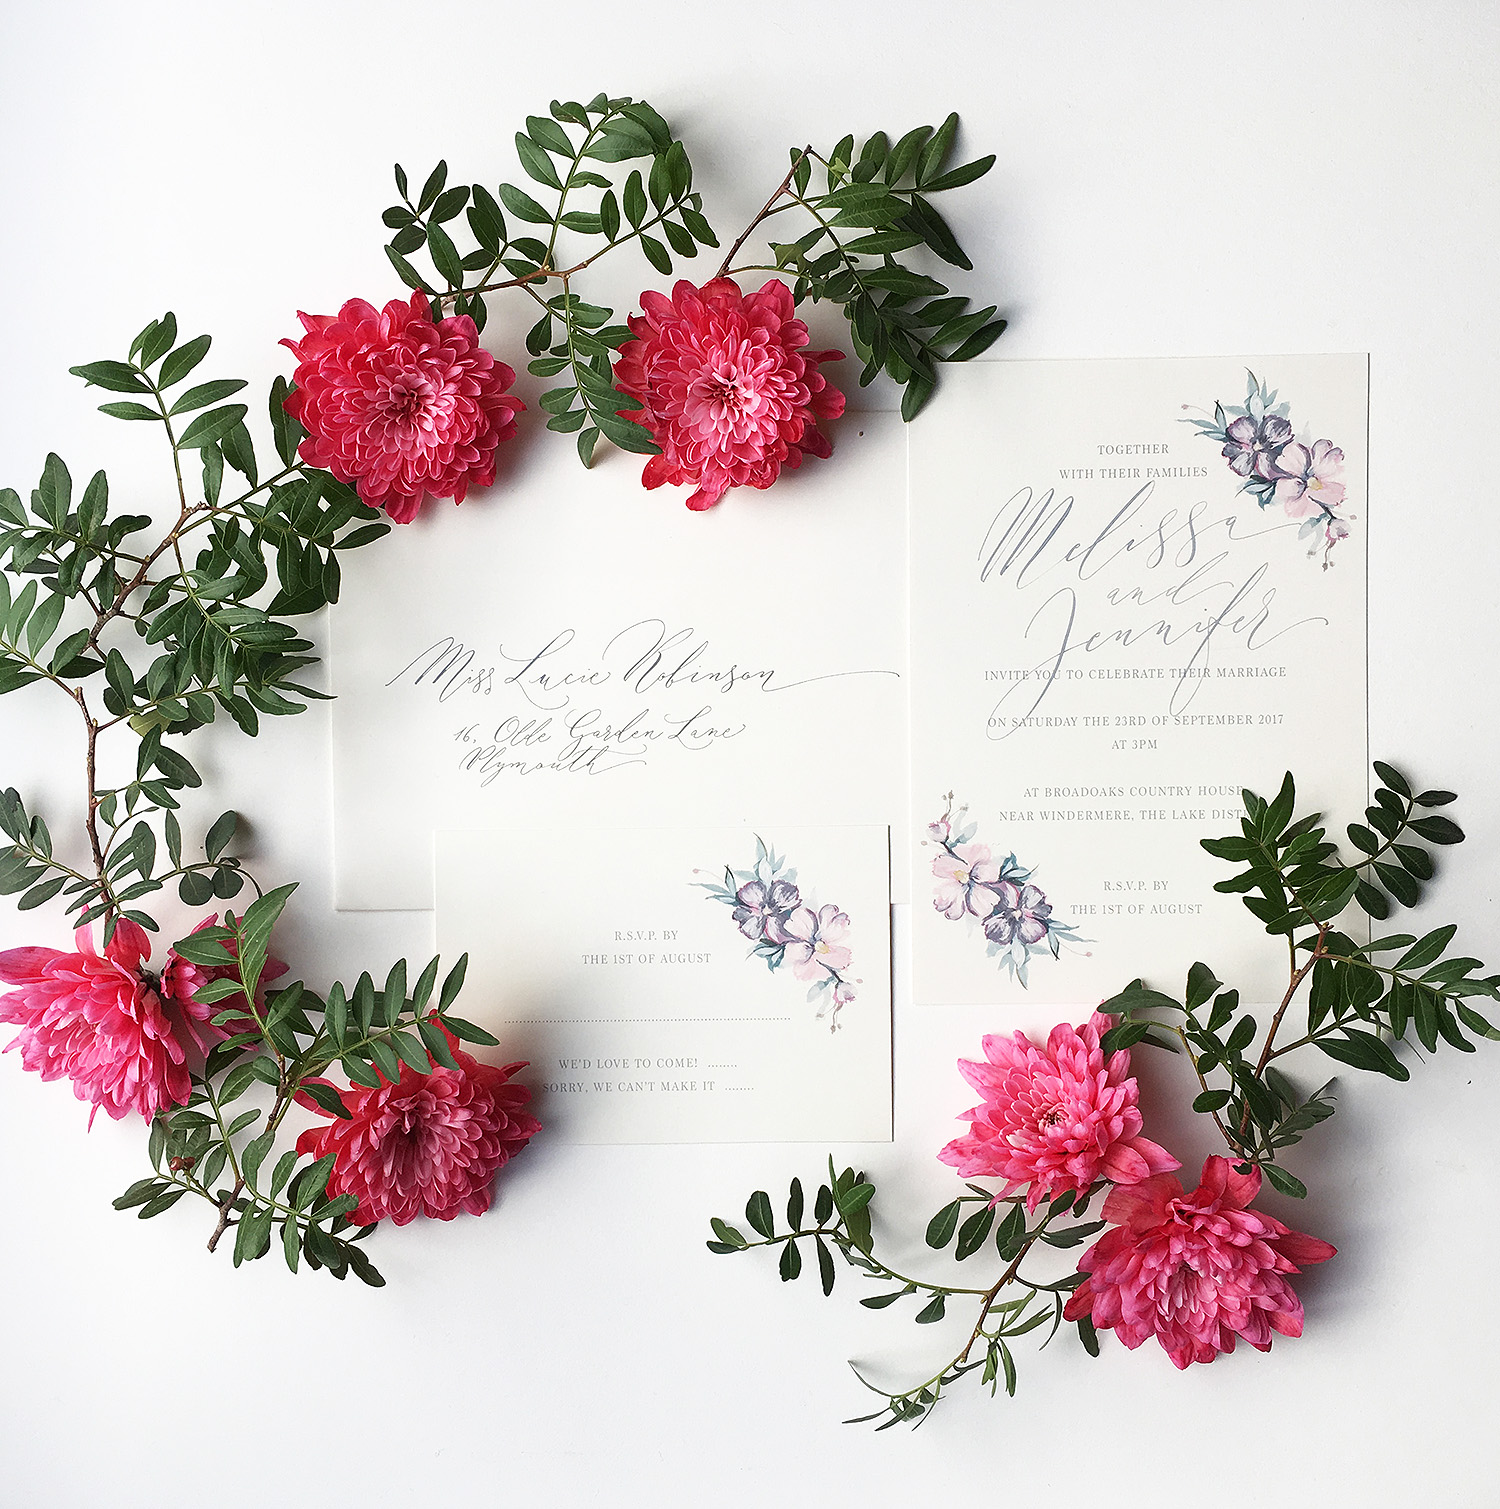 The Enchanting Secret Garden Wedding Invitation Is Available In My Online Shop From Today And Prices Start GBP250 Per